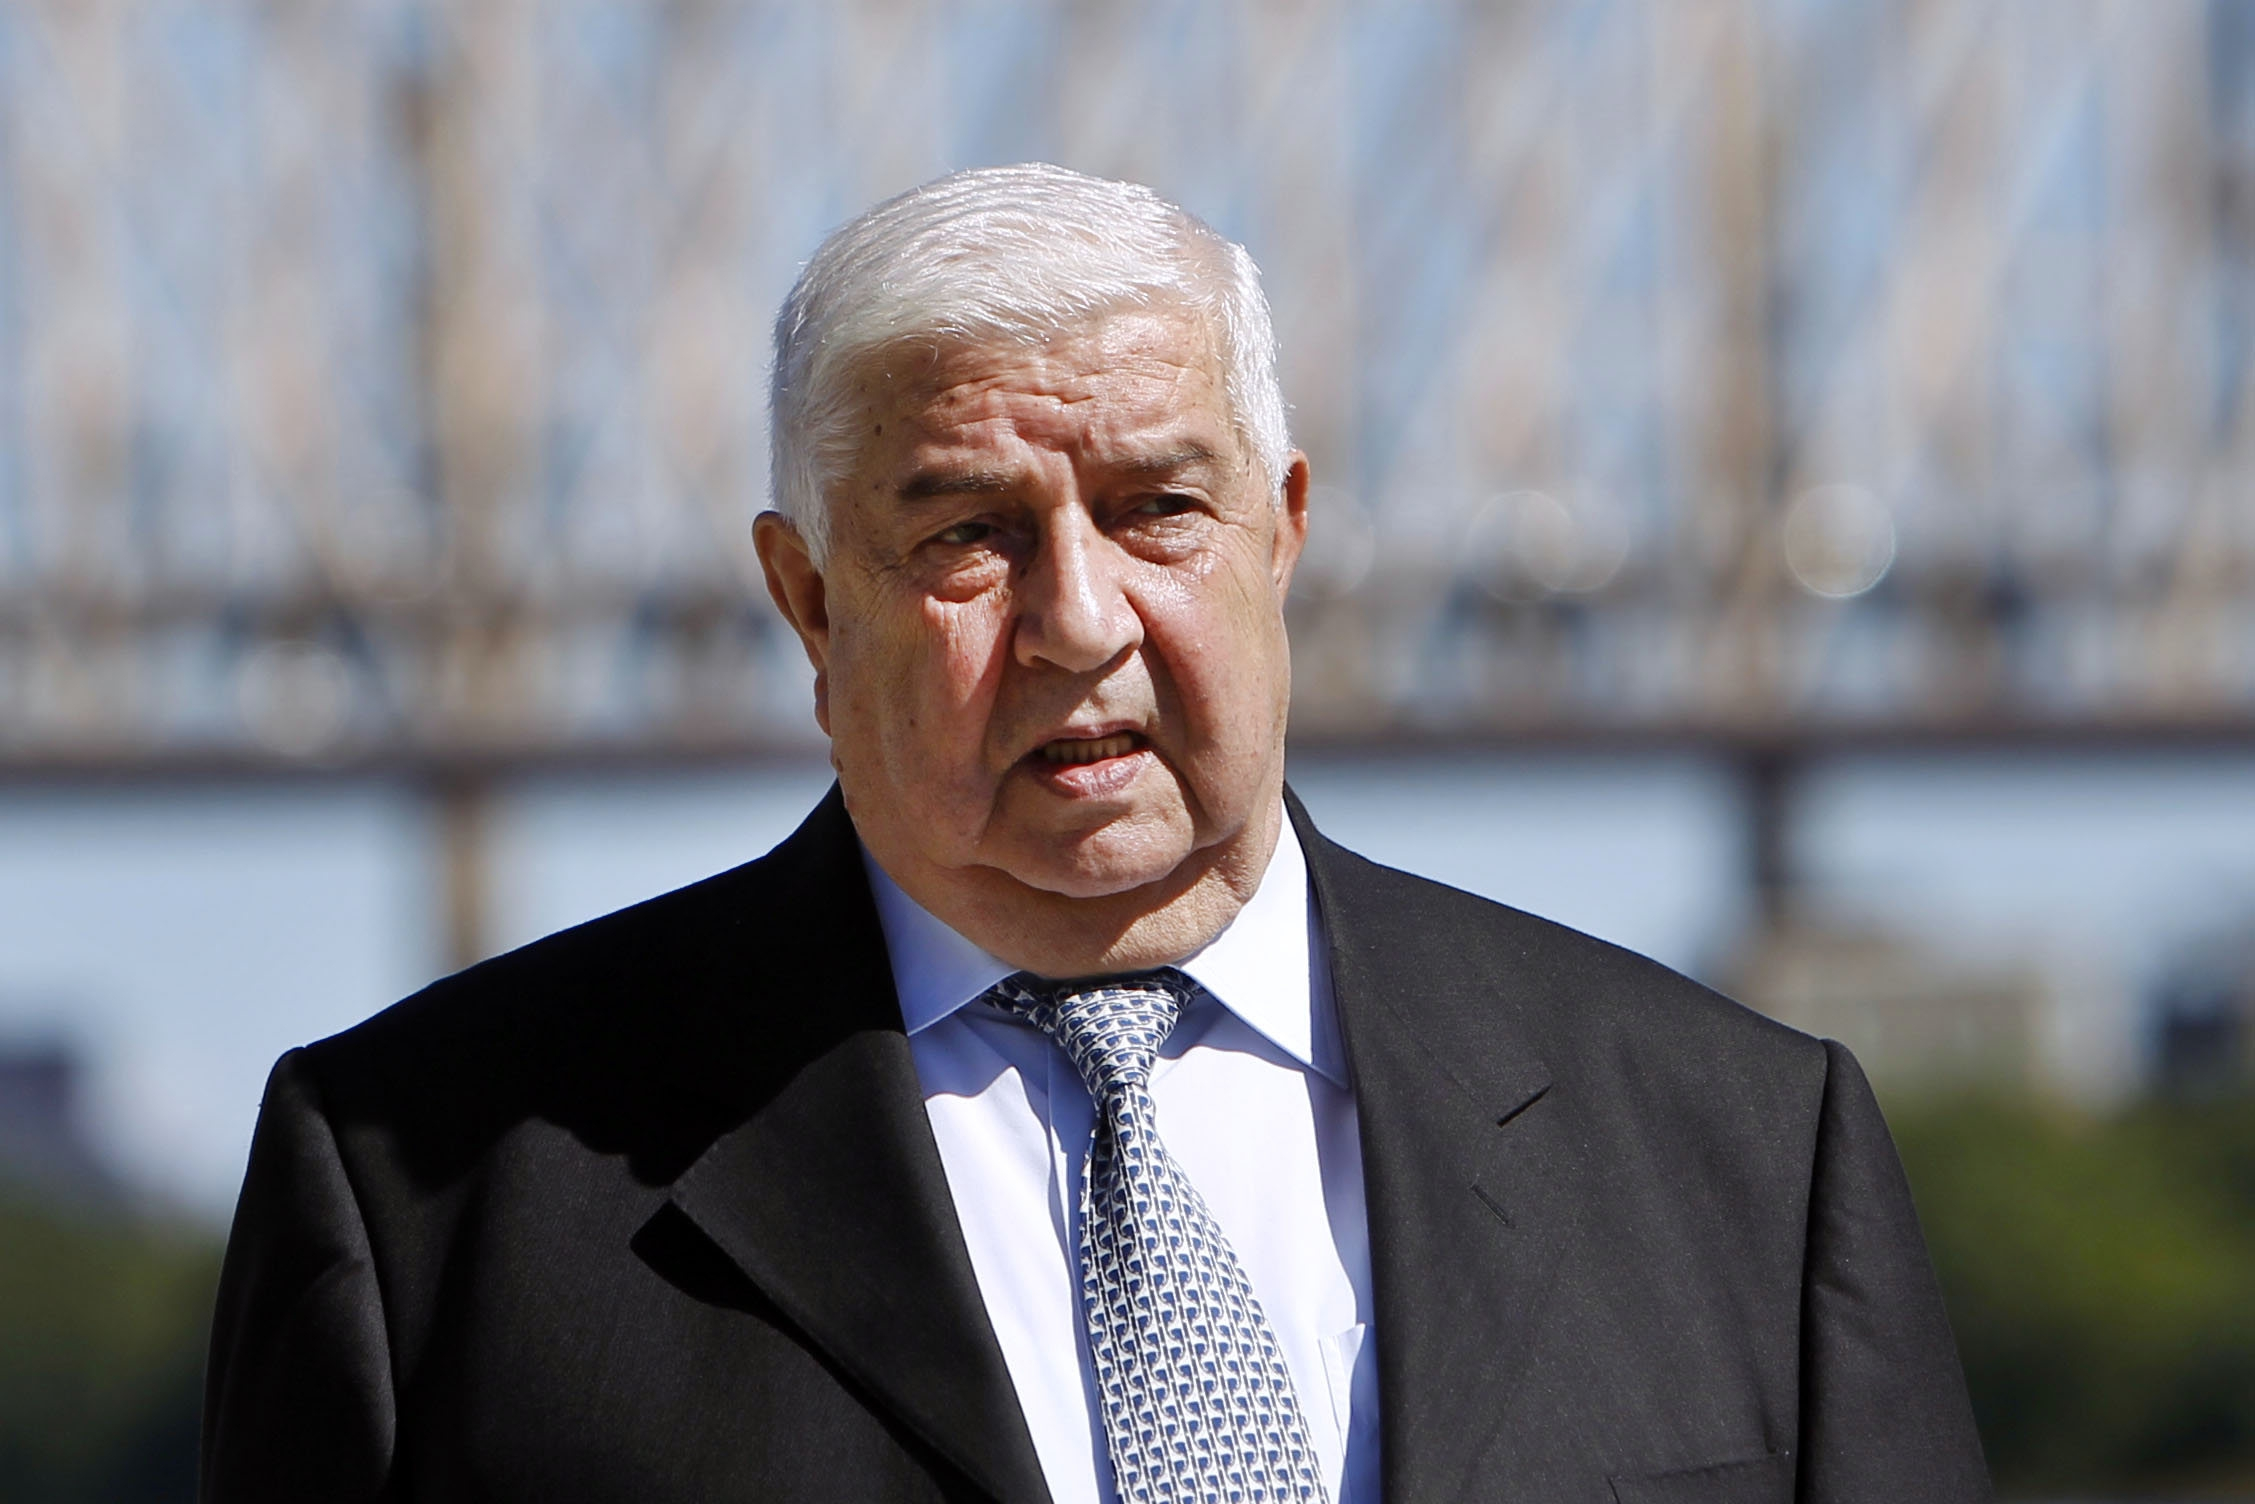 Walid al-Moallem, foreign minister of Syria, vows to cooperate with inspectors amid effort to crush revolt.